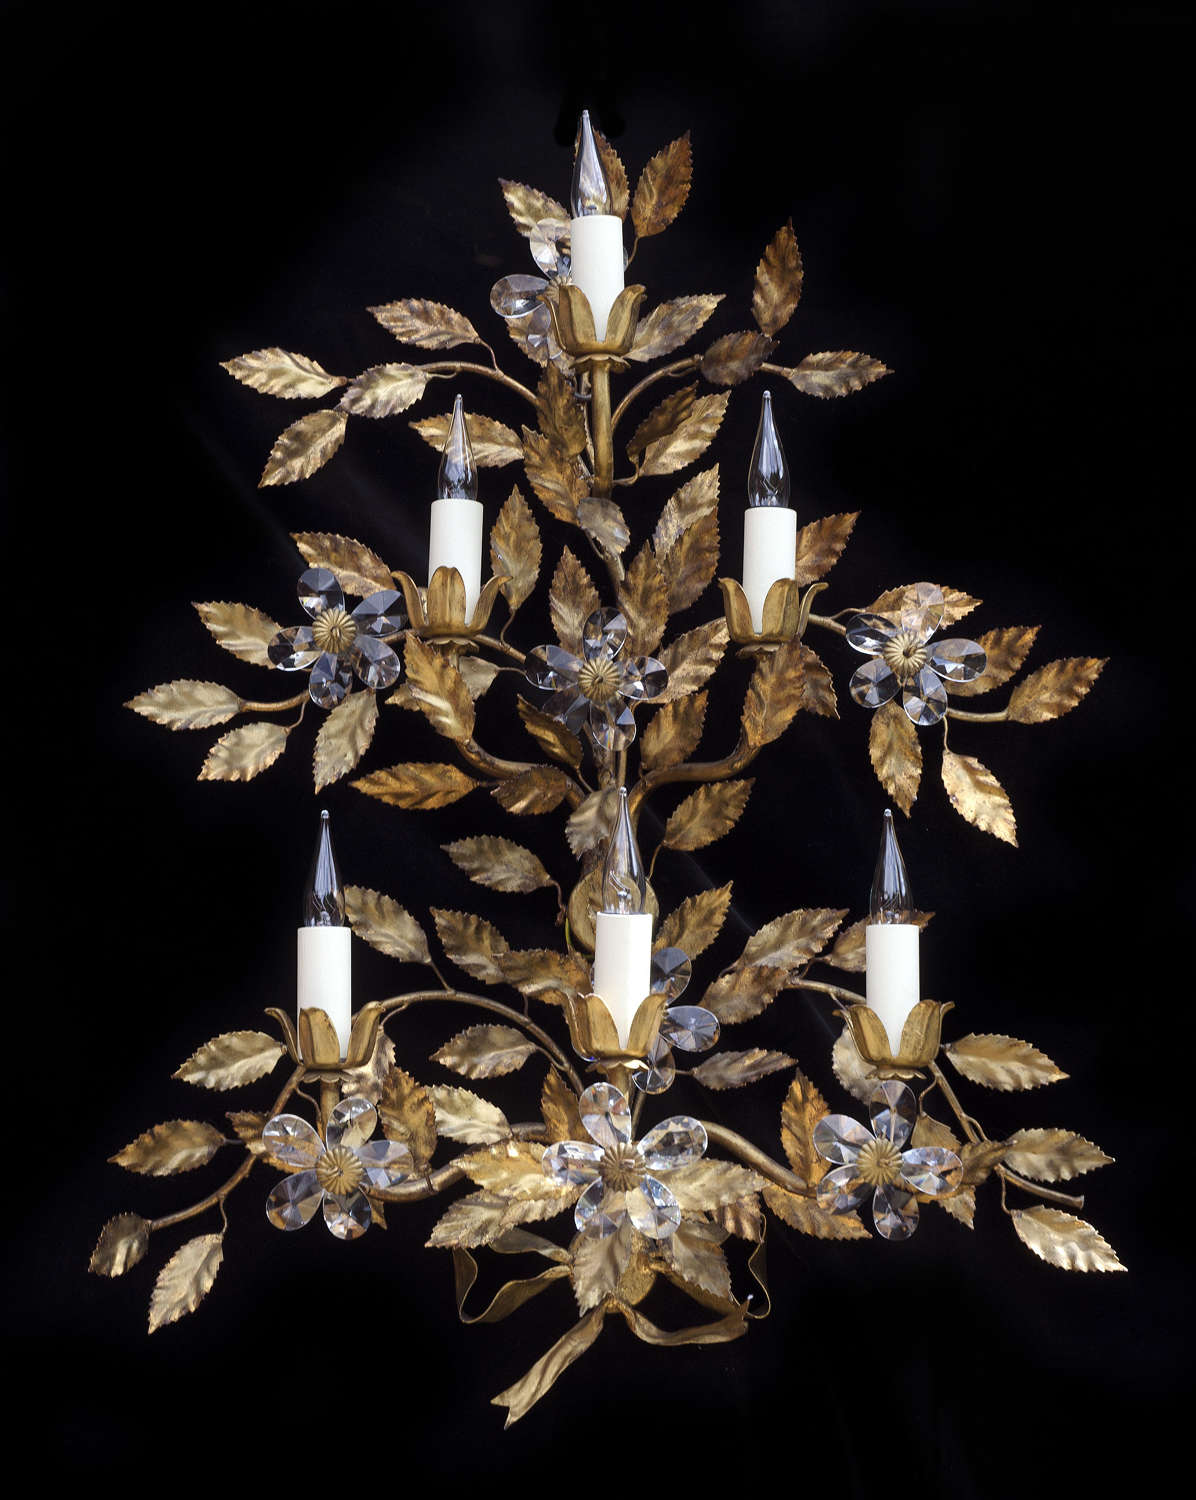 Large 6 light Italian wall applique with leaves and crystal flowers